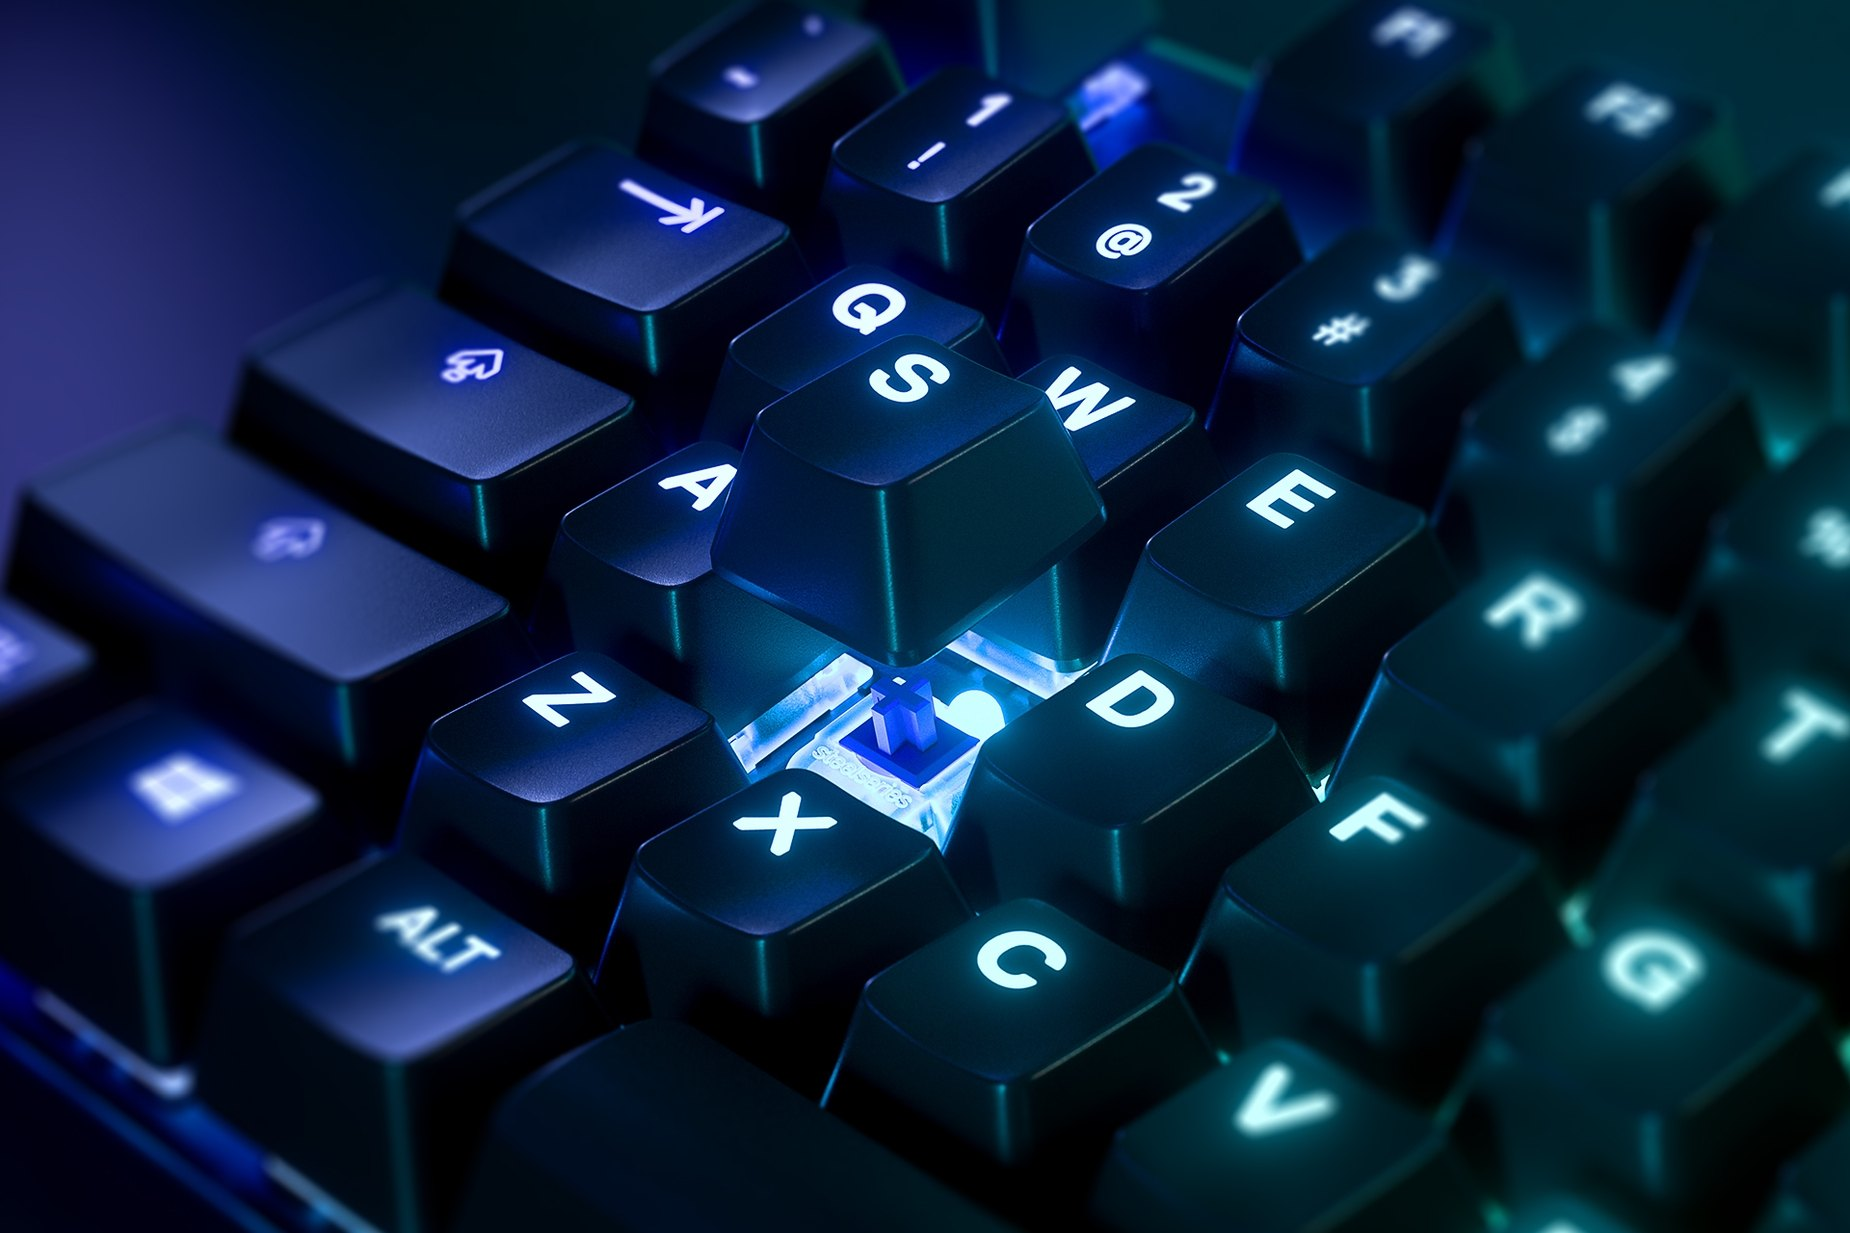 Zoomed in view of a single key on the Korean-Apex 7 (Blue Switch) gaming keyboard, the key is raised up to show the SteelSeries QX2 Mechanical RGB Switch underneath